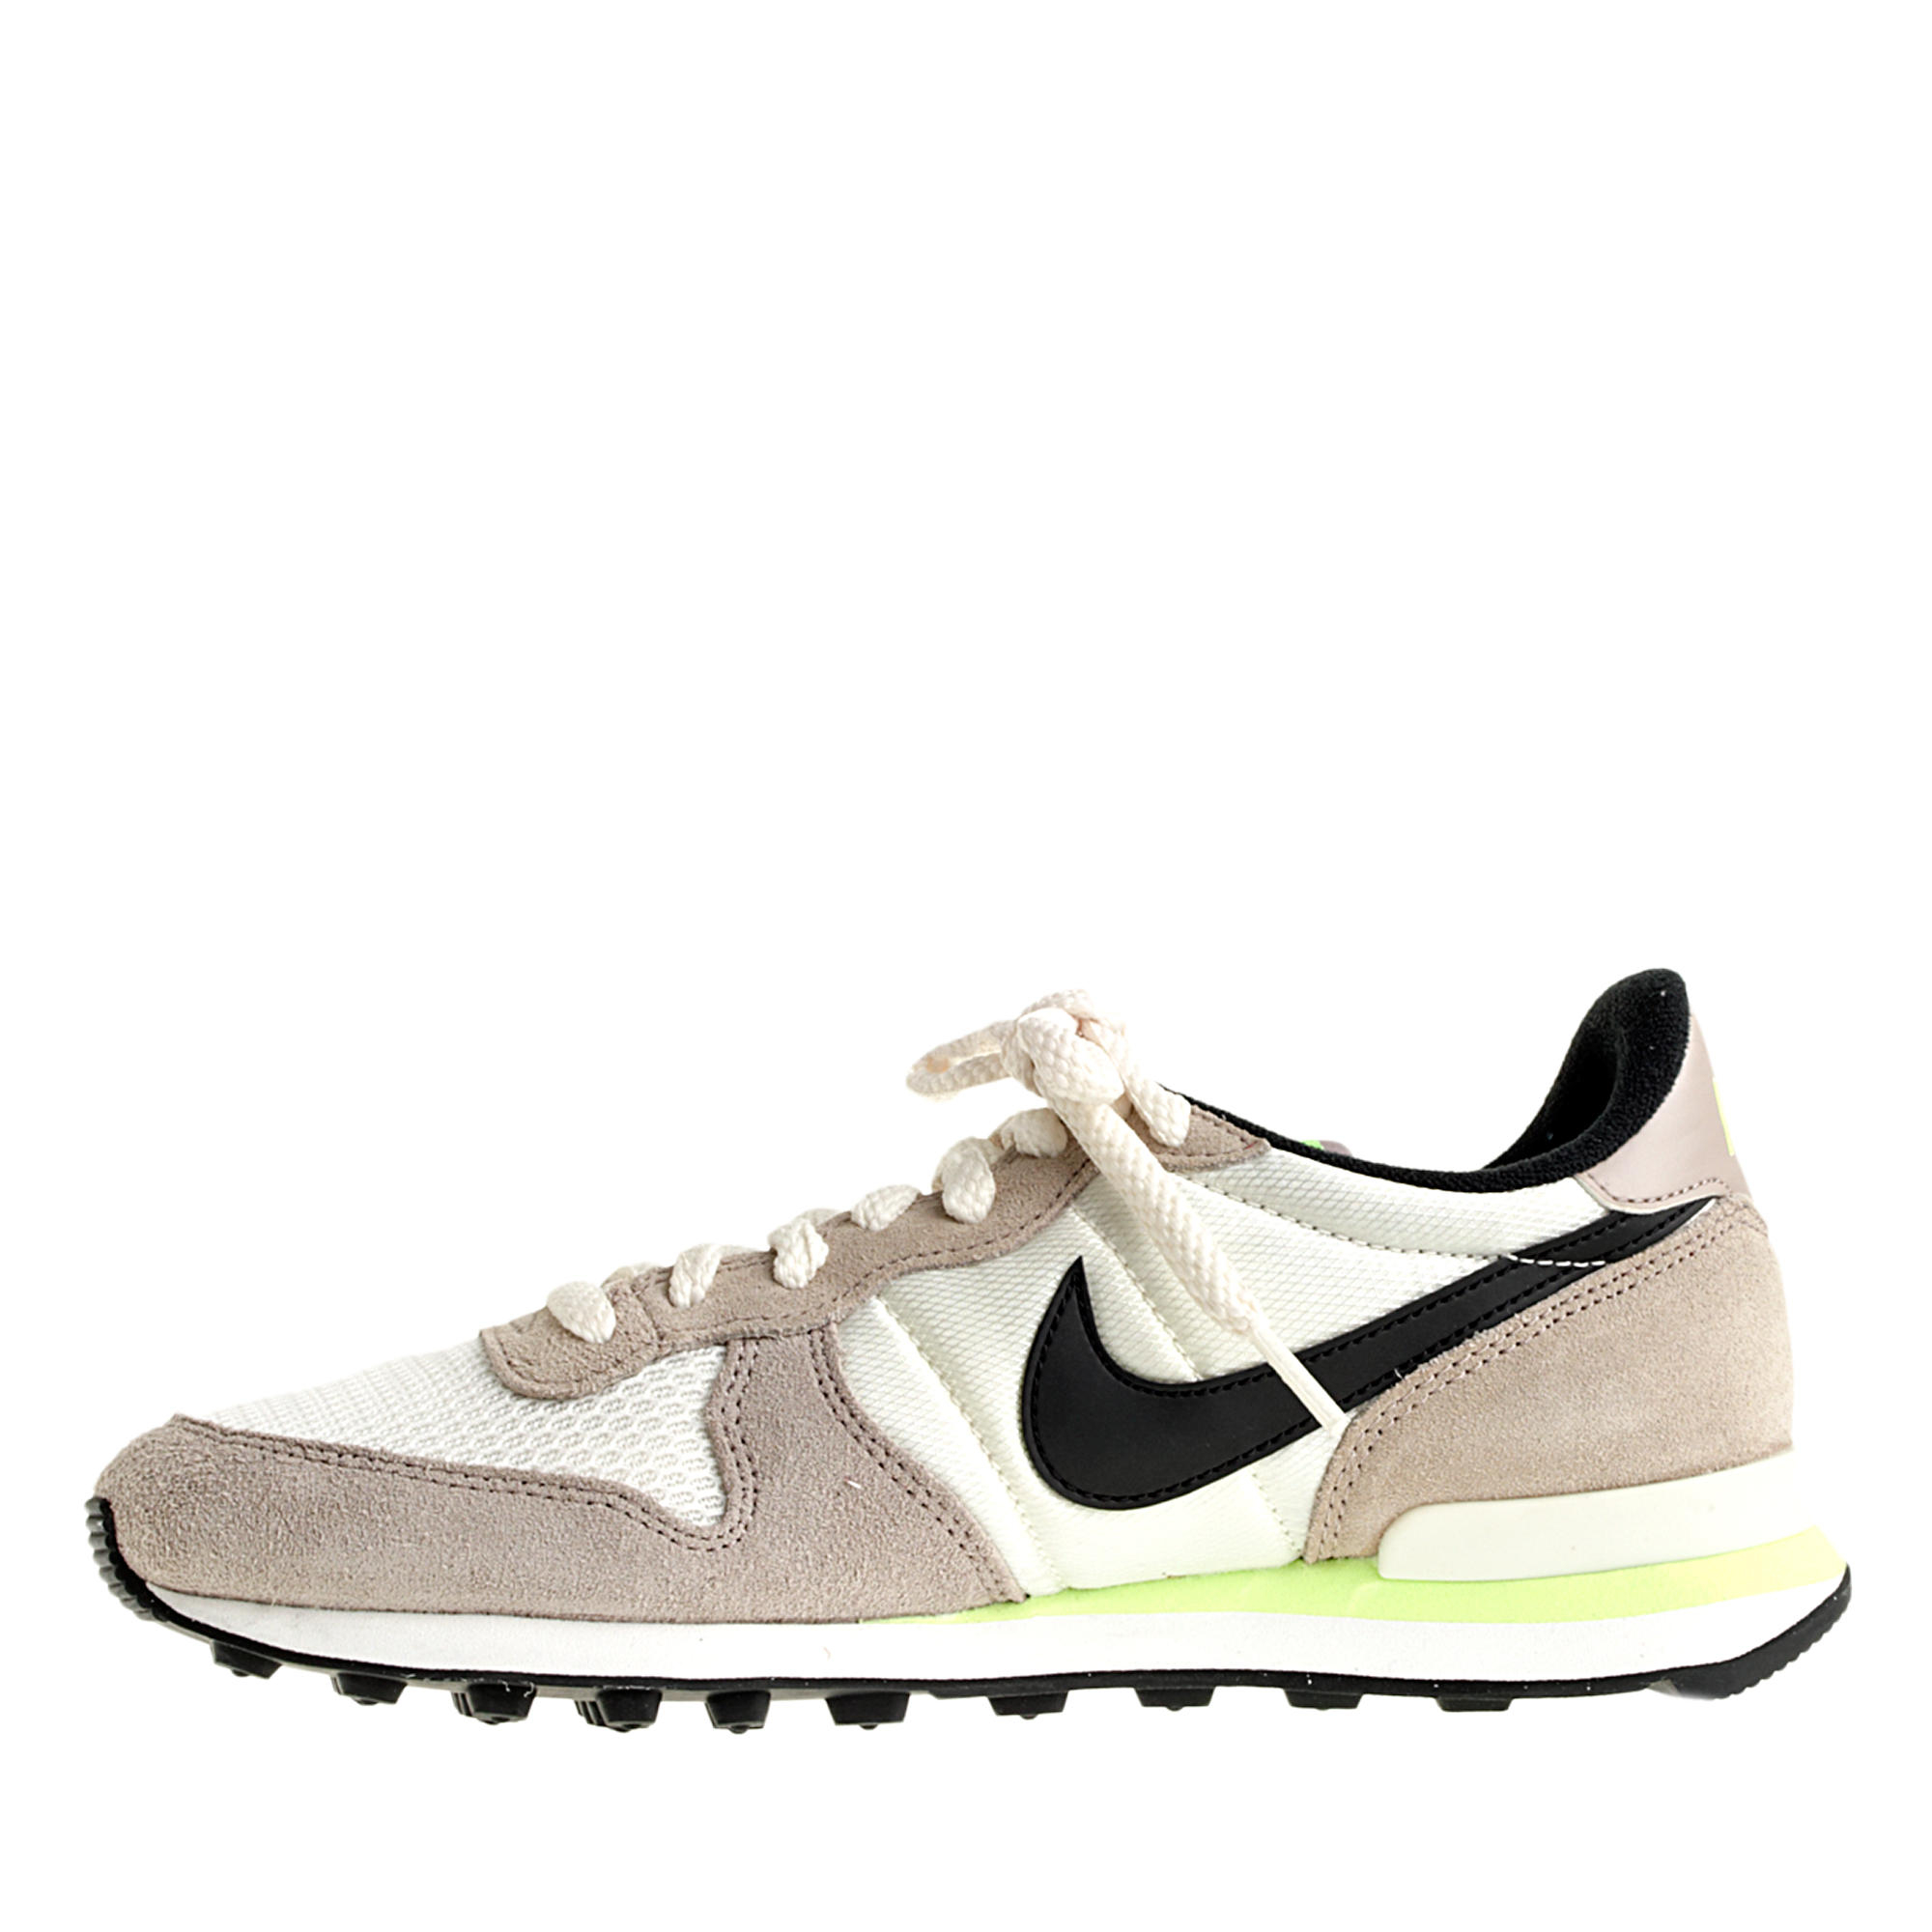 info for 6c943 47427 ... purchase lyst j.crew womens nike internationalist sneakers in brown  a6471 7ca12